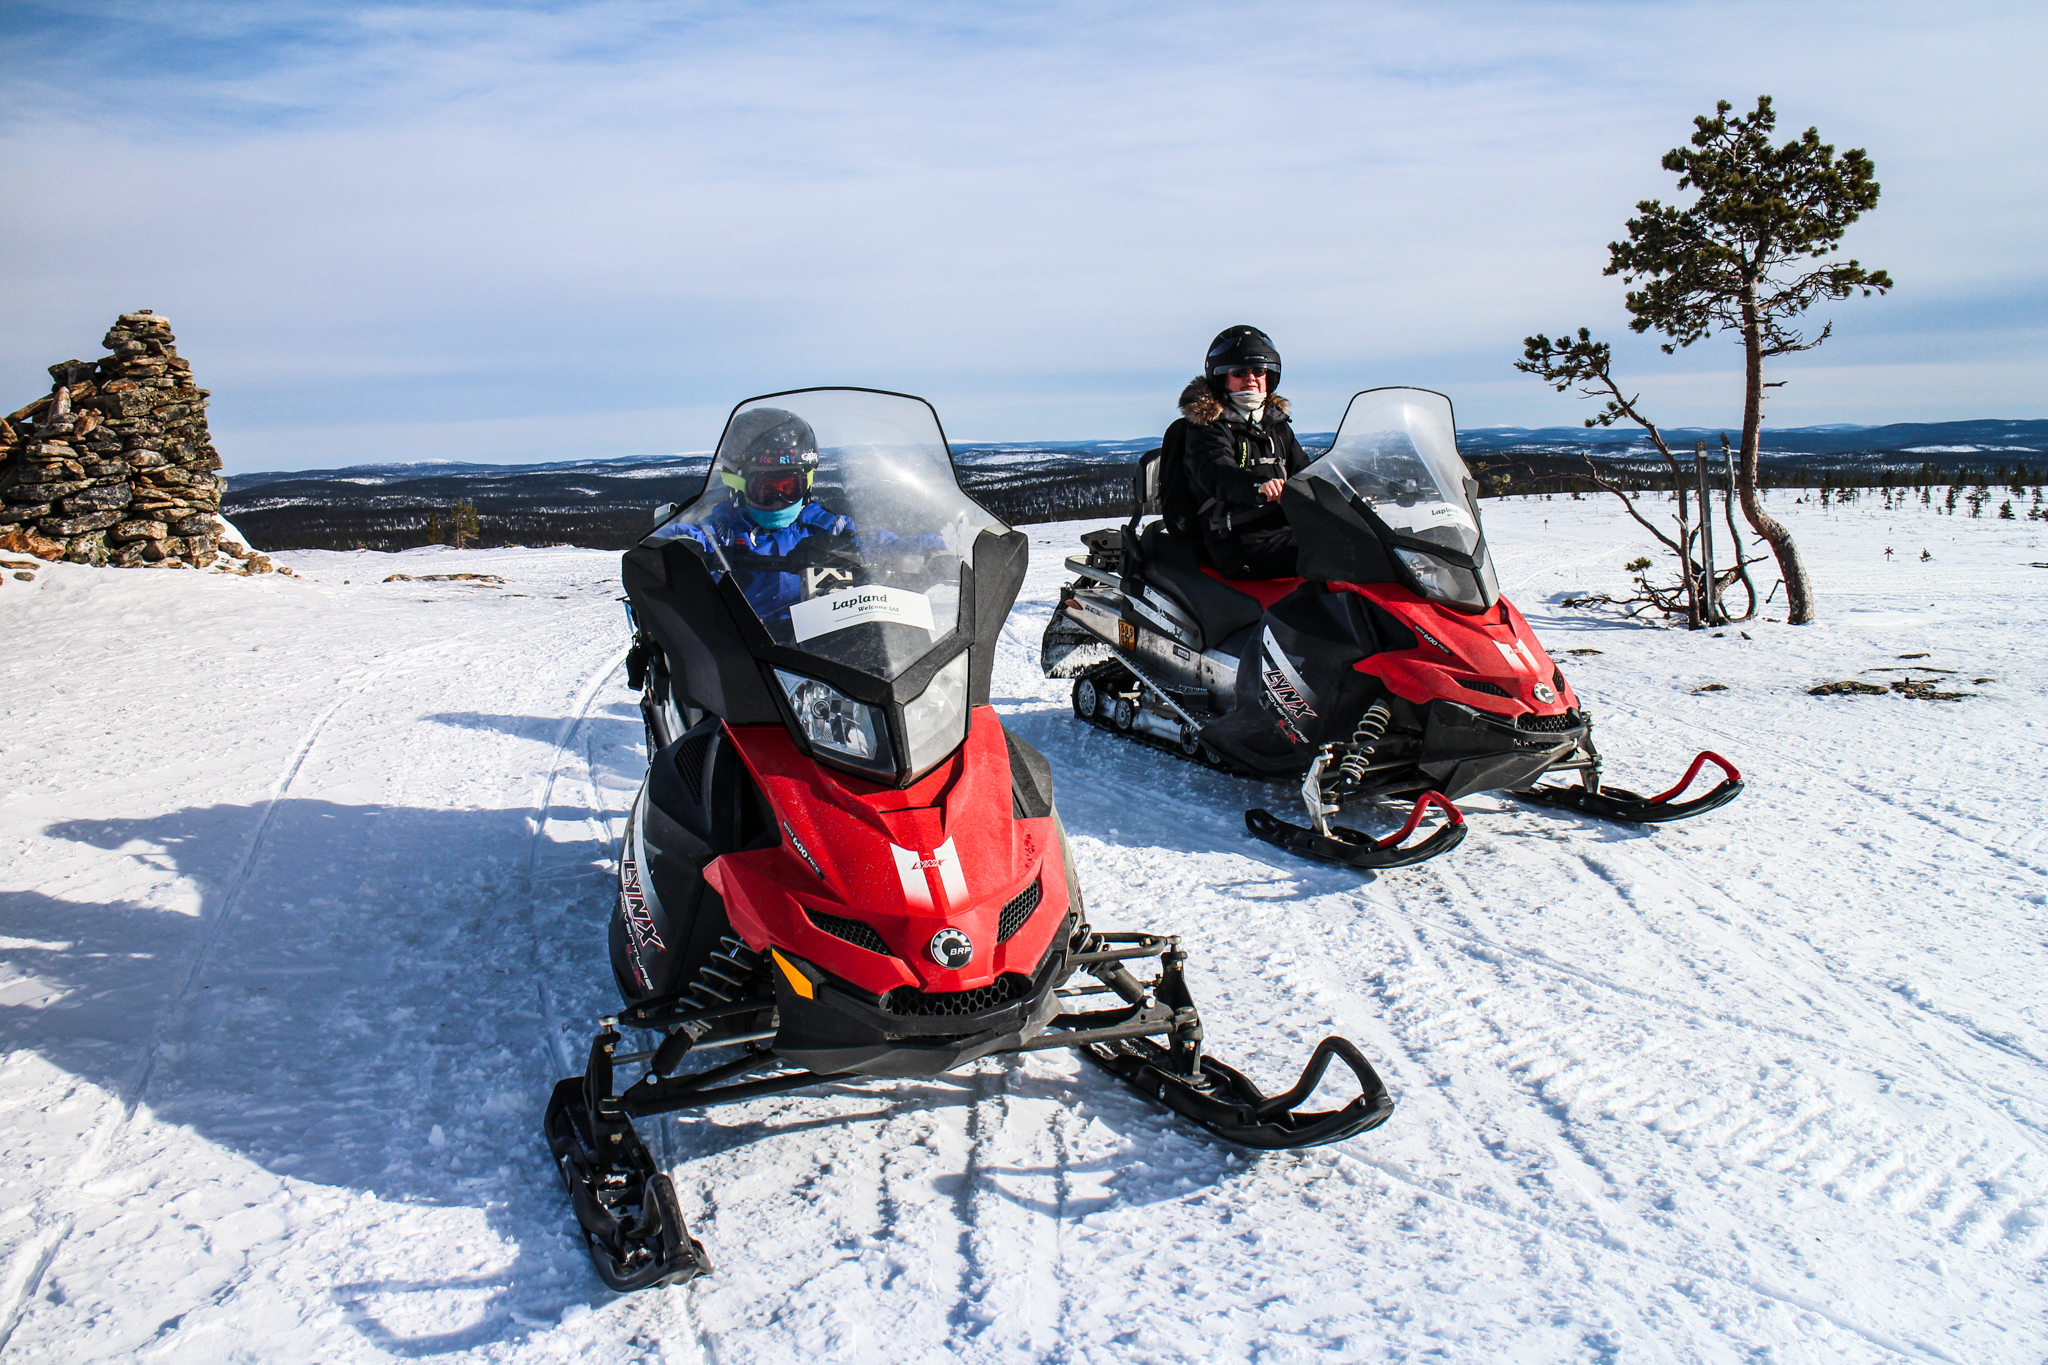 two people sitting on snowmobiles with landscape in background